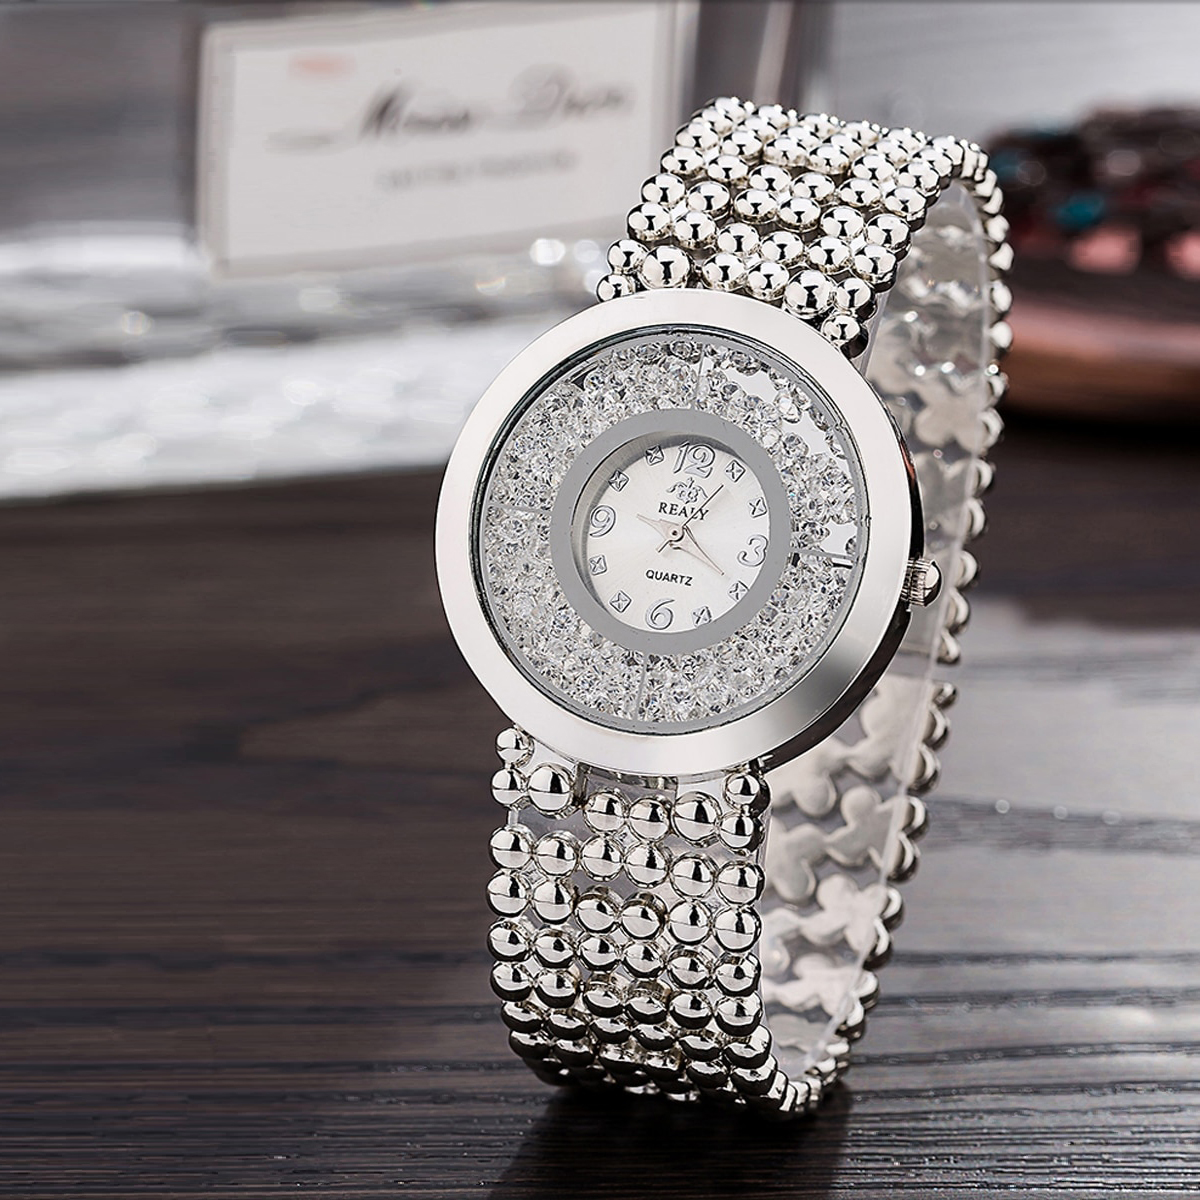 Reloj Mujer Women Diamond Watch Blng Bling Stainless Steel Analog Quartz Wristwatch Lady Luxury Rinstone Wtaches Gold ClcokReloj Mujer Women Diamond Watch Blng Bling Stainless Steel Analog Quartz Wristwatch Lady Luxury Rinstone Wtaches Gold Clcok